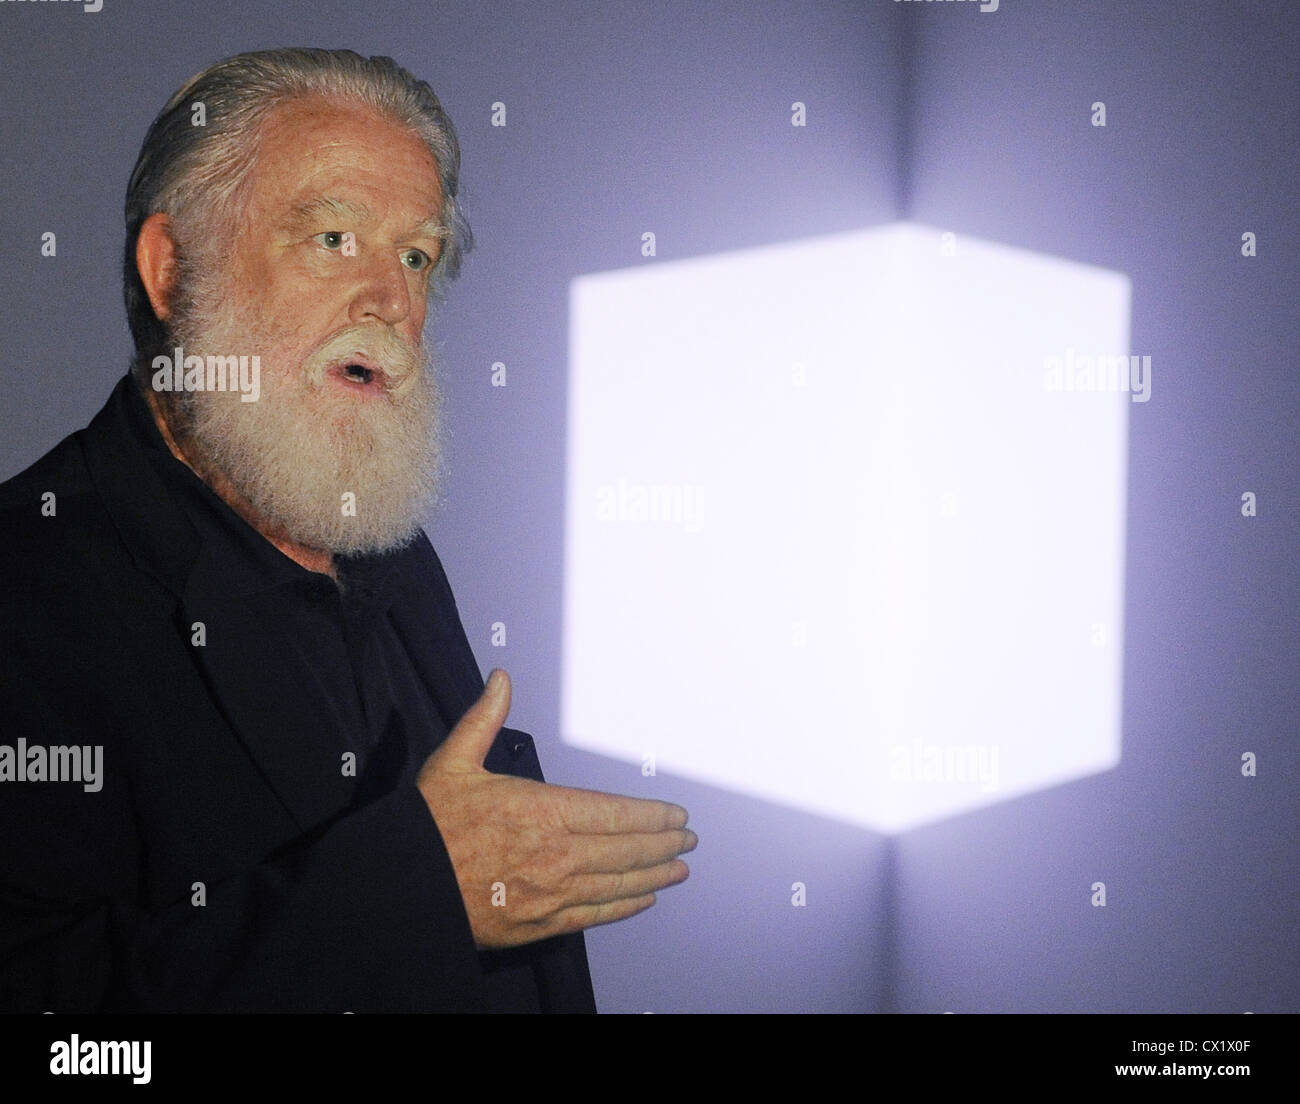 ITAR-TASS: MOSCOW, RUSSIA. JUNE 10, 2011. American artist James Turrell attends the exhibition of his works opened Stock Photo